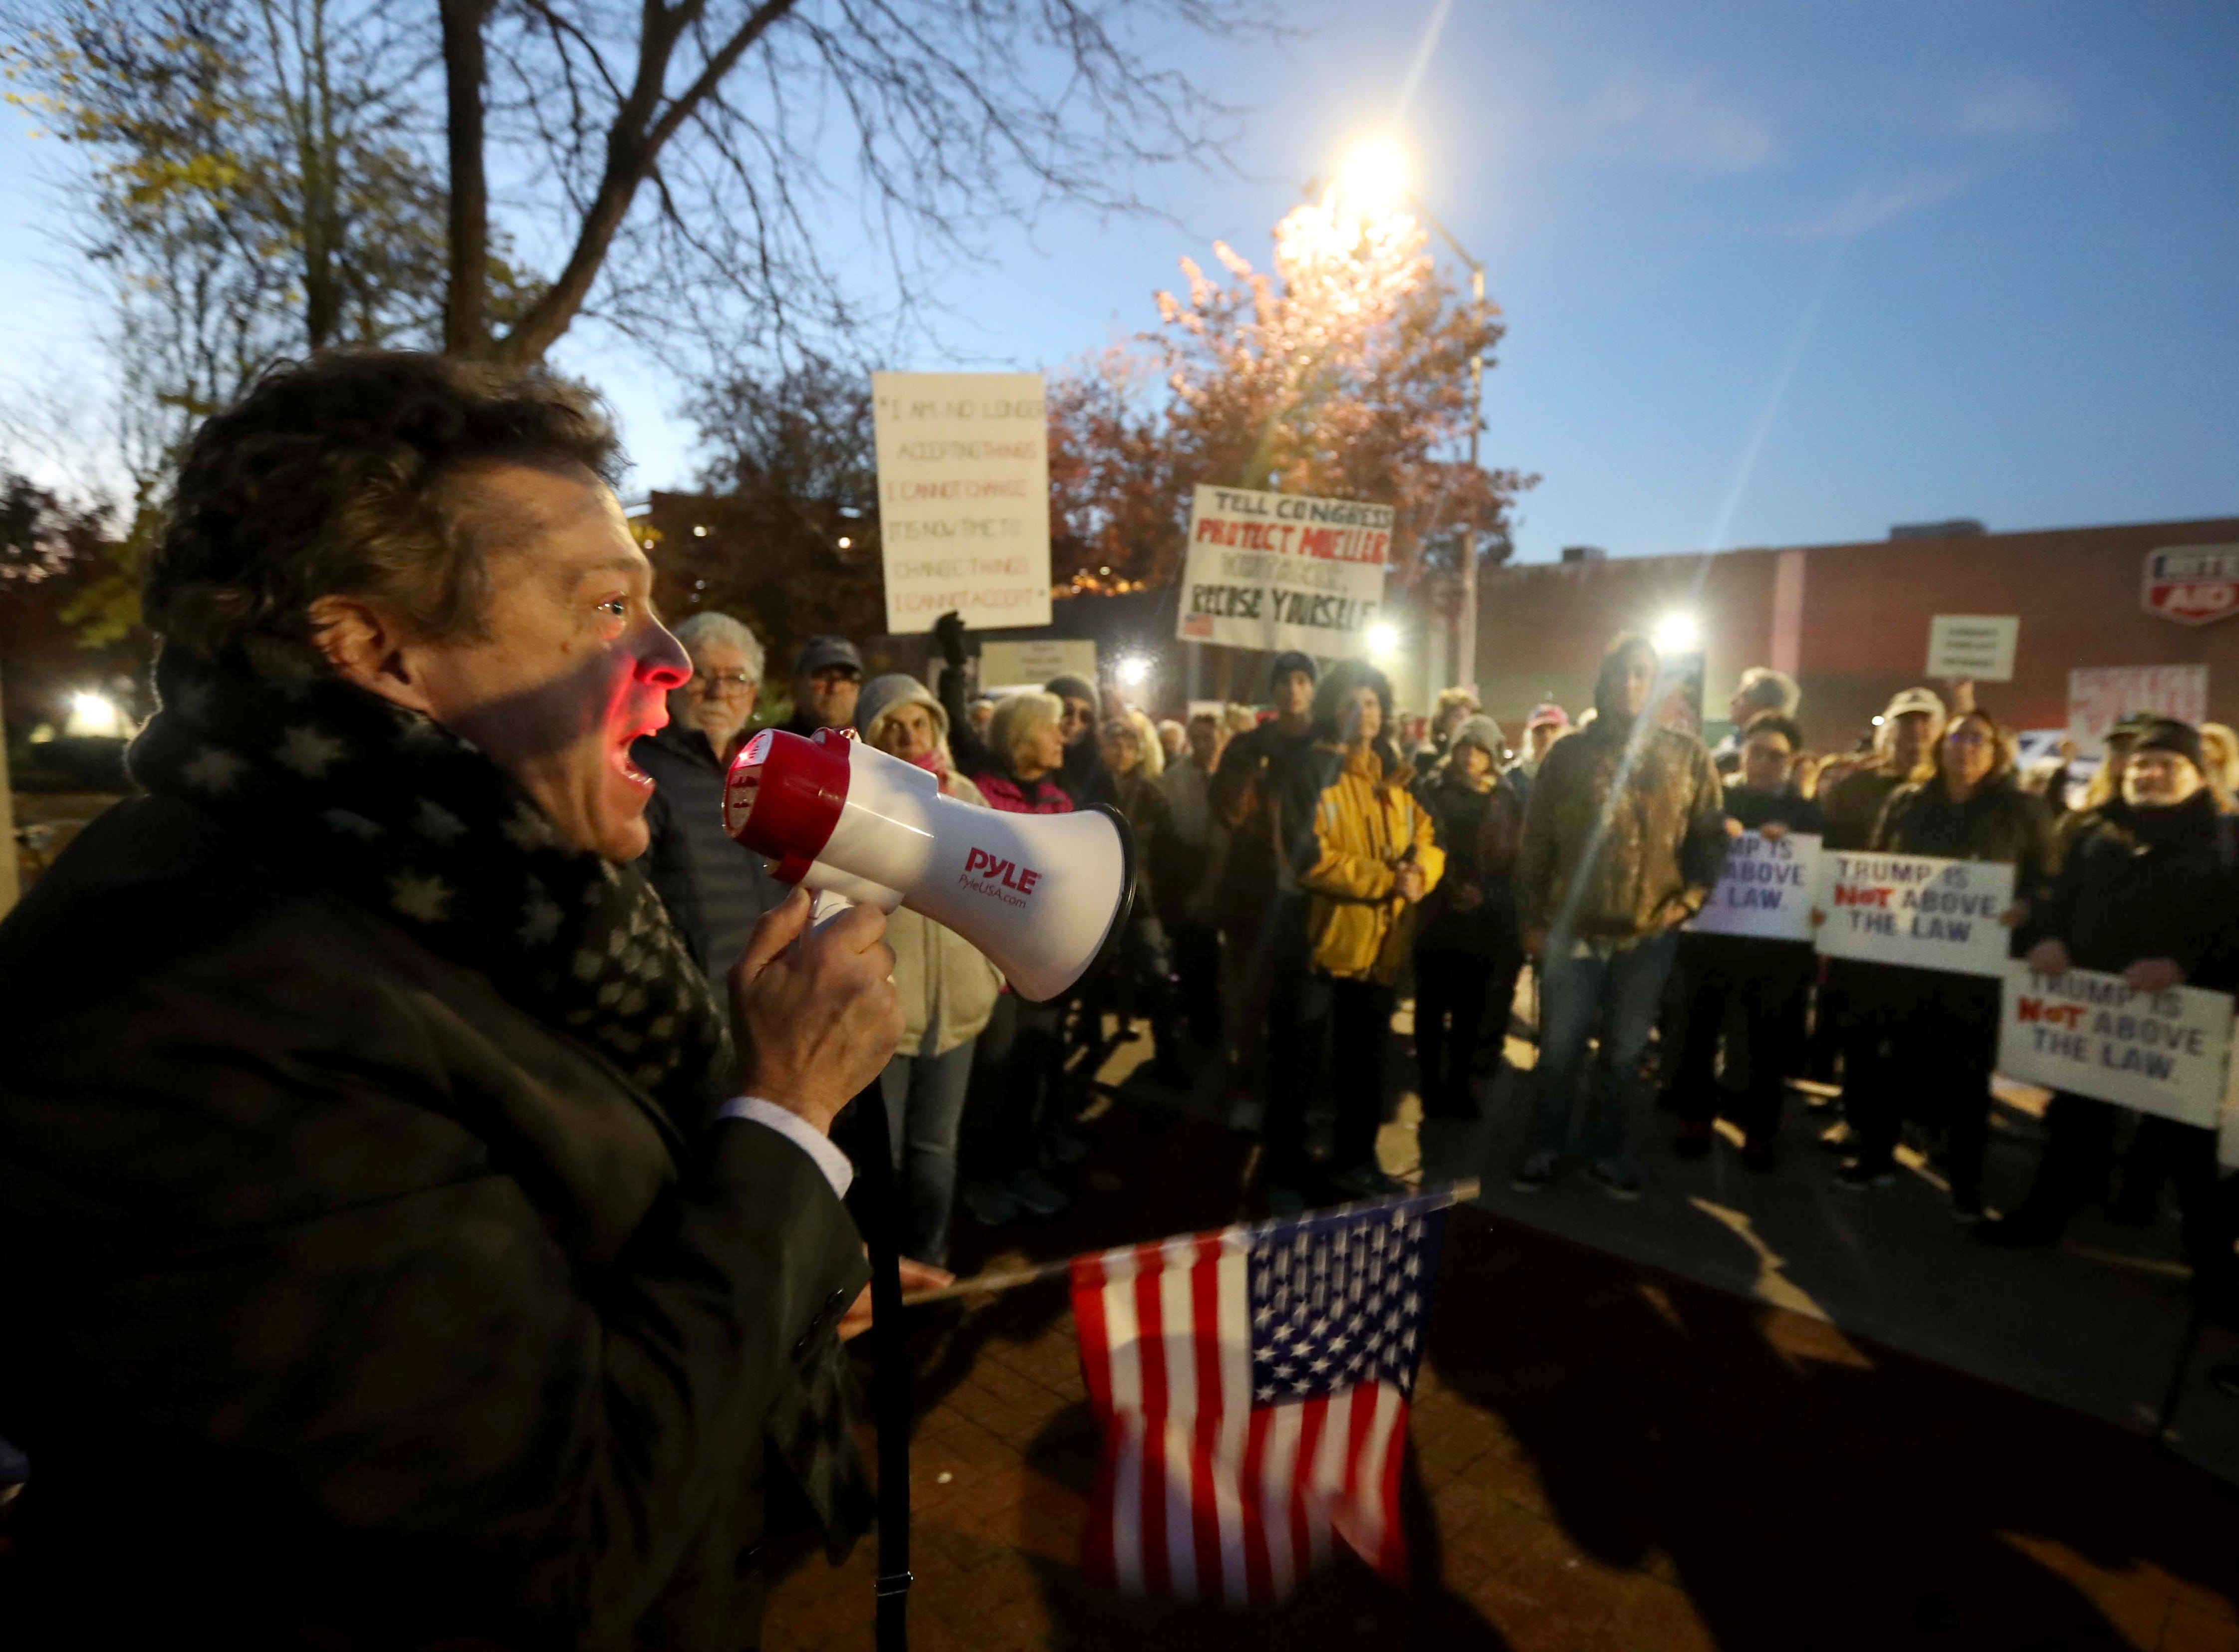 Robert Kesten of Lewisboro, N.Y. speaks to over one-hundred people in front of Senator Chuck Schumer's local office in Peekskill, N.Y. during a rally calling for the protection of the Robert Mueller's investigation Nov. 8, 2018. The protest coincided with similar protests across the nation and came in the wake of President Trump's firing of Attorney General Jeff Sessions.